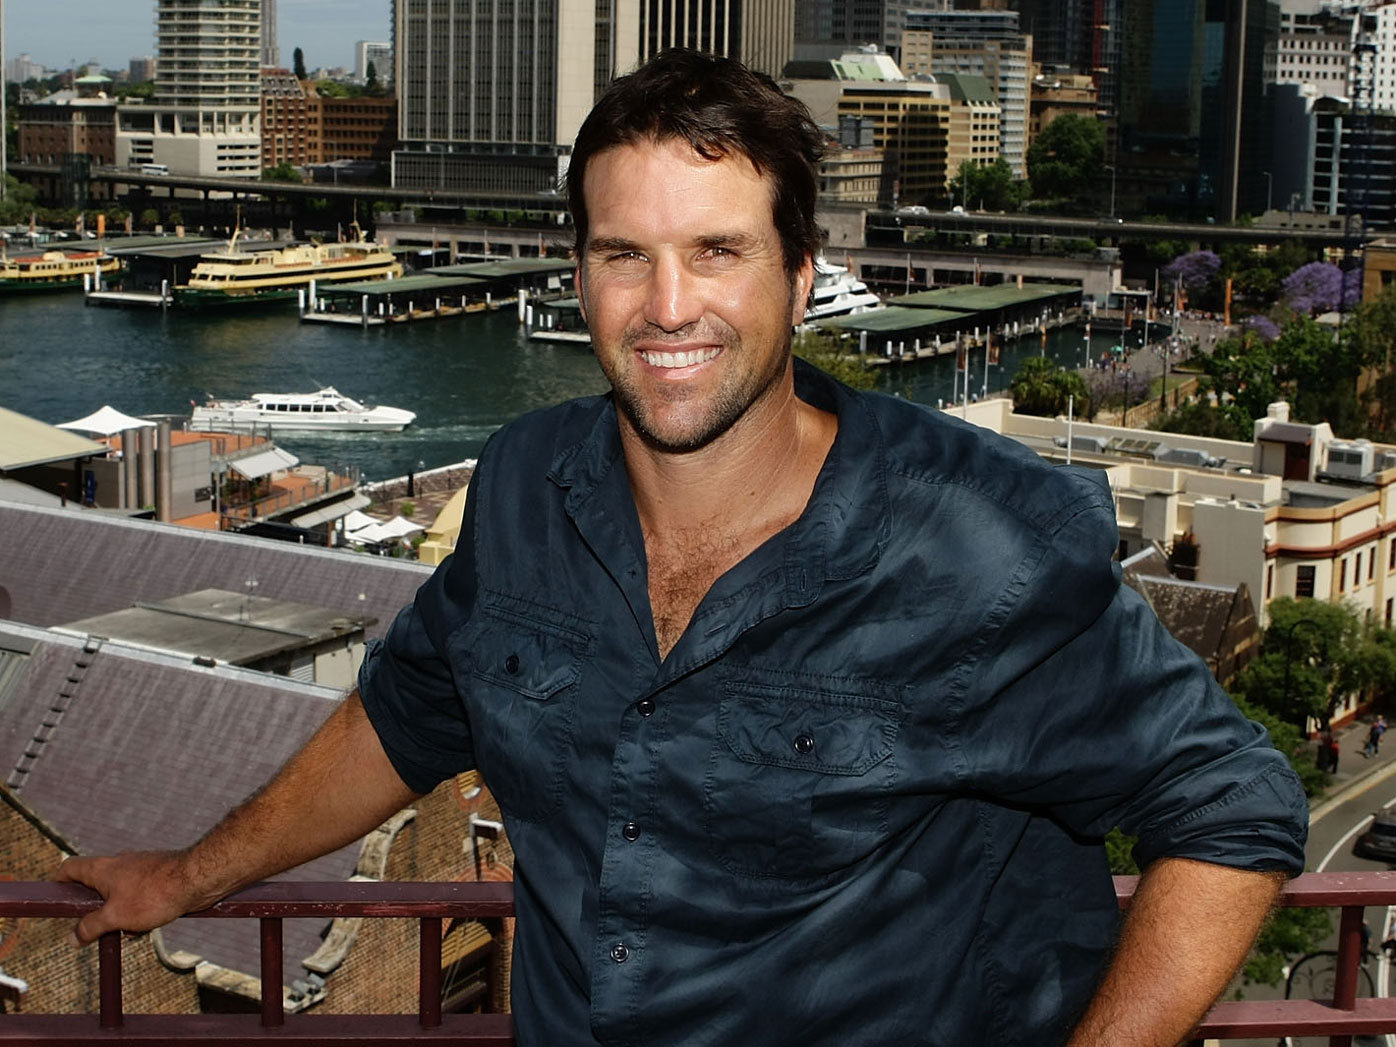 Tennis star Pat Rafter has sold his $18m home in Noosa, making more on the home than he has in his entire sports career. The former world number one has his career earnings listed at almost $14m...and his tidy $4m profit is not to be sniffed at!